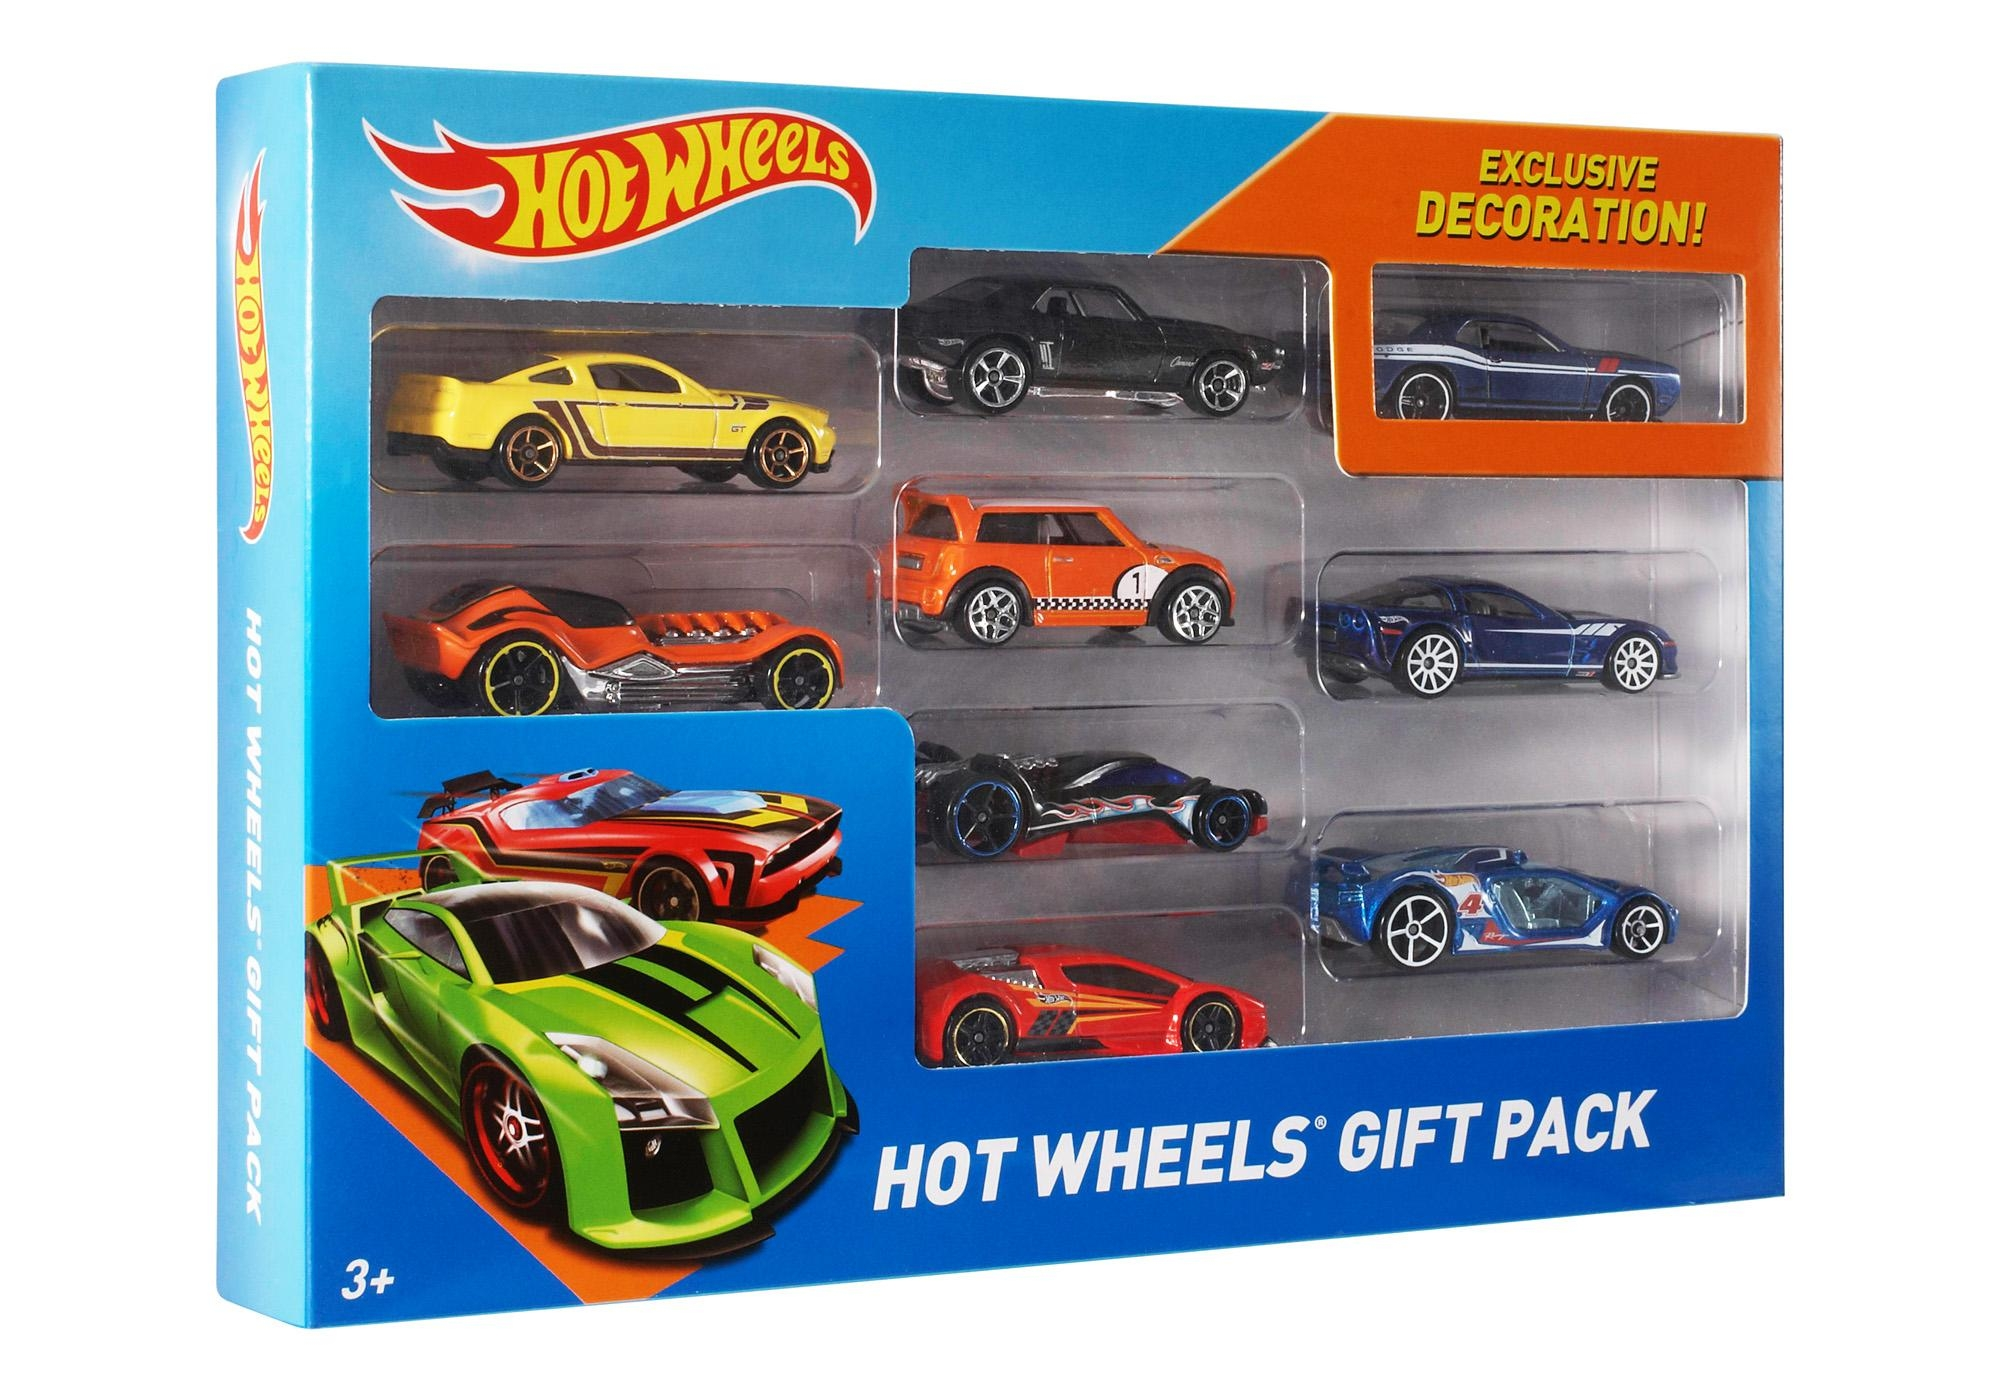 Hot Wheels 9 Die Cast Car Gift Pack (Styles May Vary) – Walmart With Regard To Hot Wheels Wall Art (View 7 of 20)